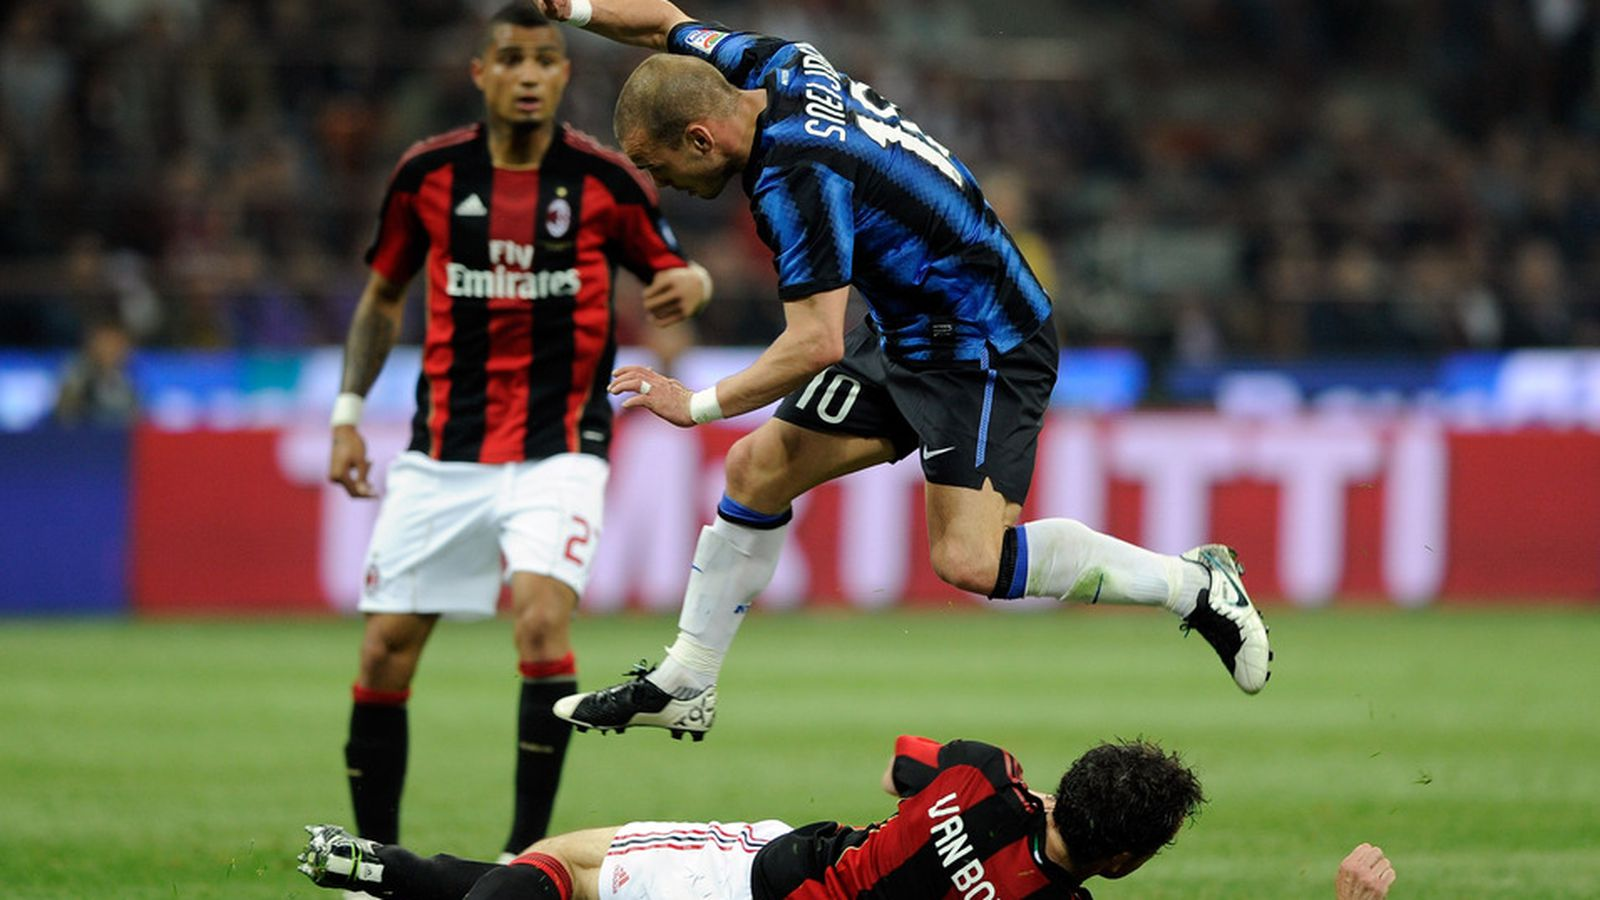 AC Milan Vs. Inter Milan: The recent rise and fall of the